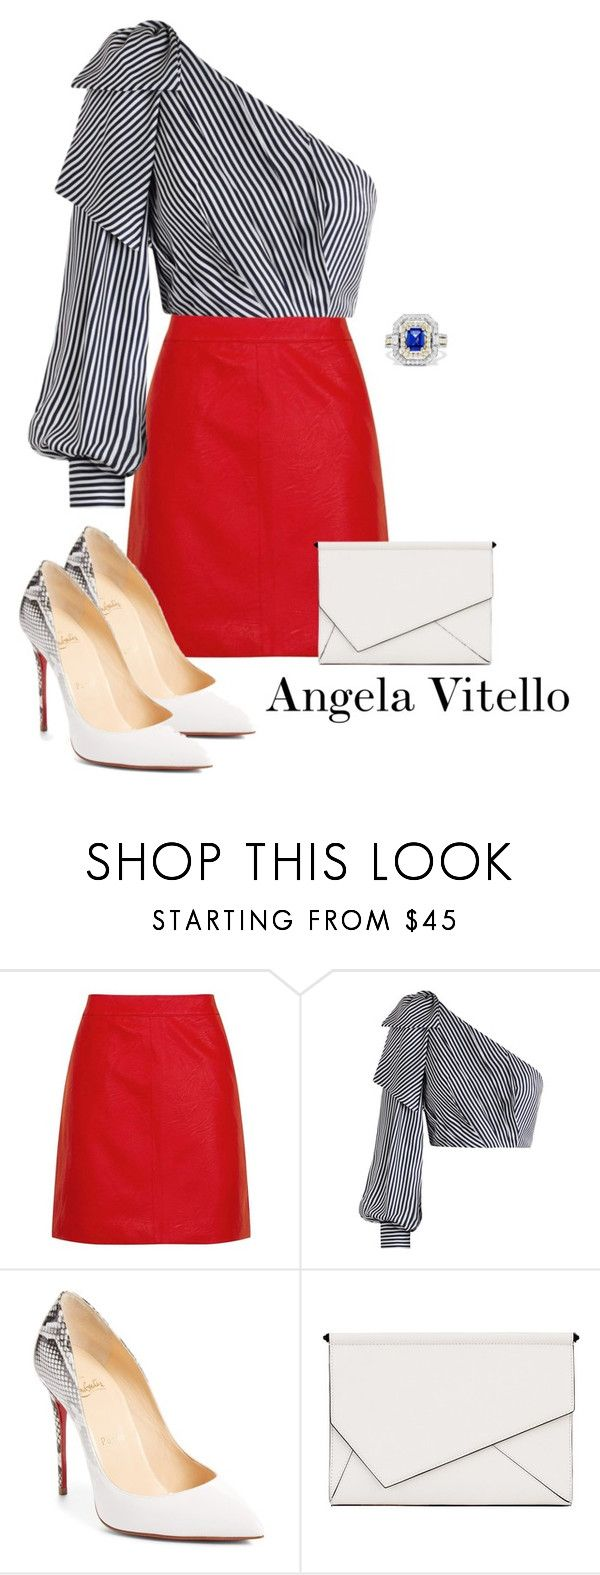 """""""Untitled #1081"""" by angela-vitello on Polyvore featuring Topshop, Zimmermann, Christian Louboutin, Kendall + Kylie and Effy Jewelry"""